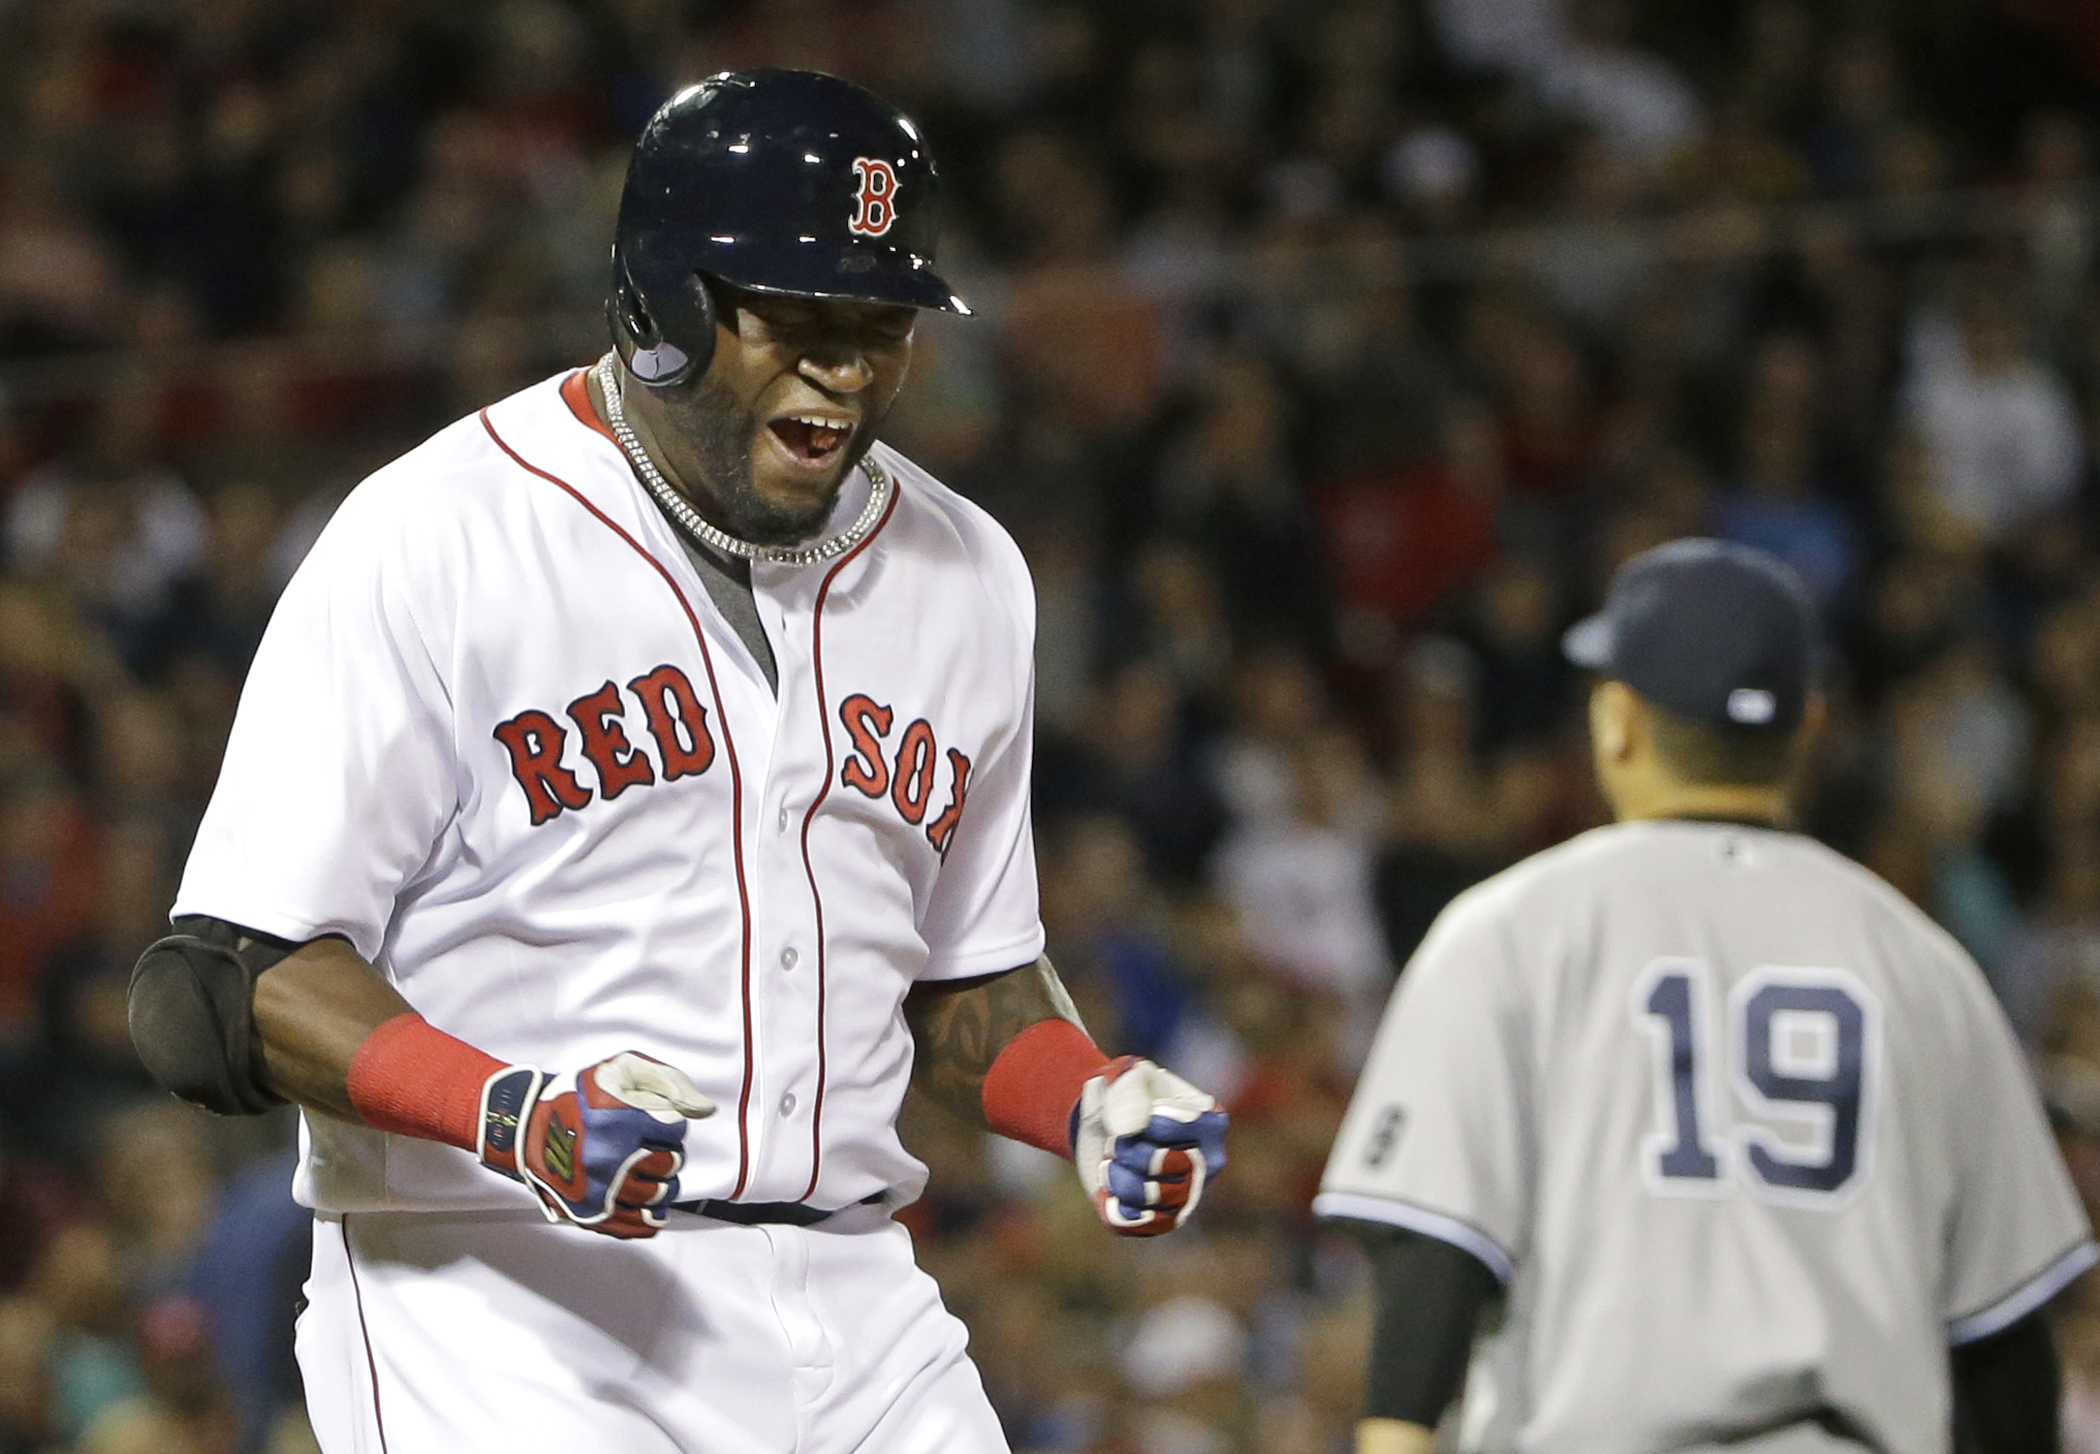 Boston Red Sox designated hitter David Ortiz reacts after grounding out against New York Yankees starting pitcher Masahiro Tanaka (19) to end the fifth inning of a baseball game at Fenway Park, Thursday, Sept. 15, 2016, in Boston. (AP Photo/Elise Amendola